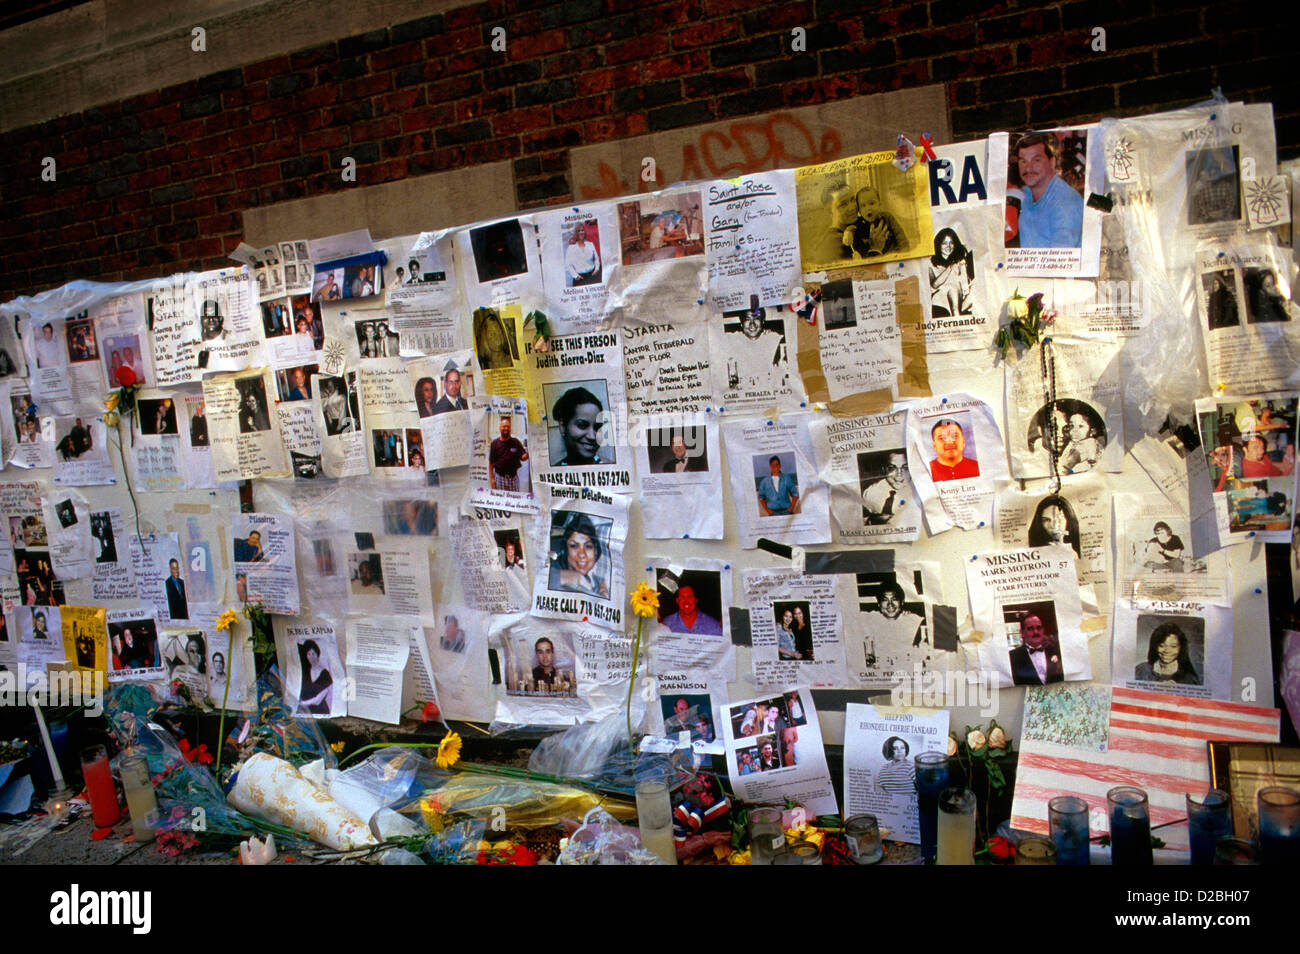 New York City, 9/11/2001. Wall Of Photos Of Missing Persons Following World Trade Center Attack - Stock Image